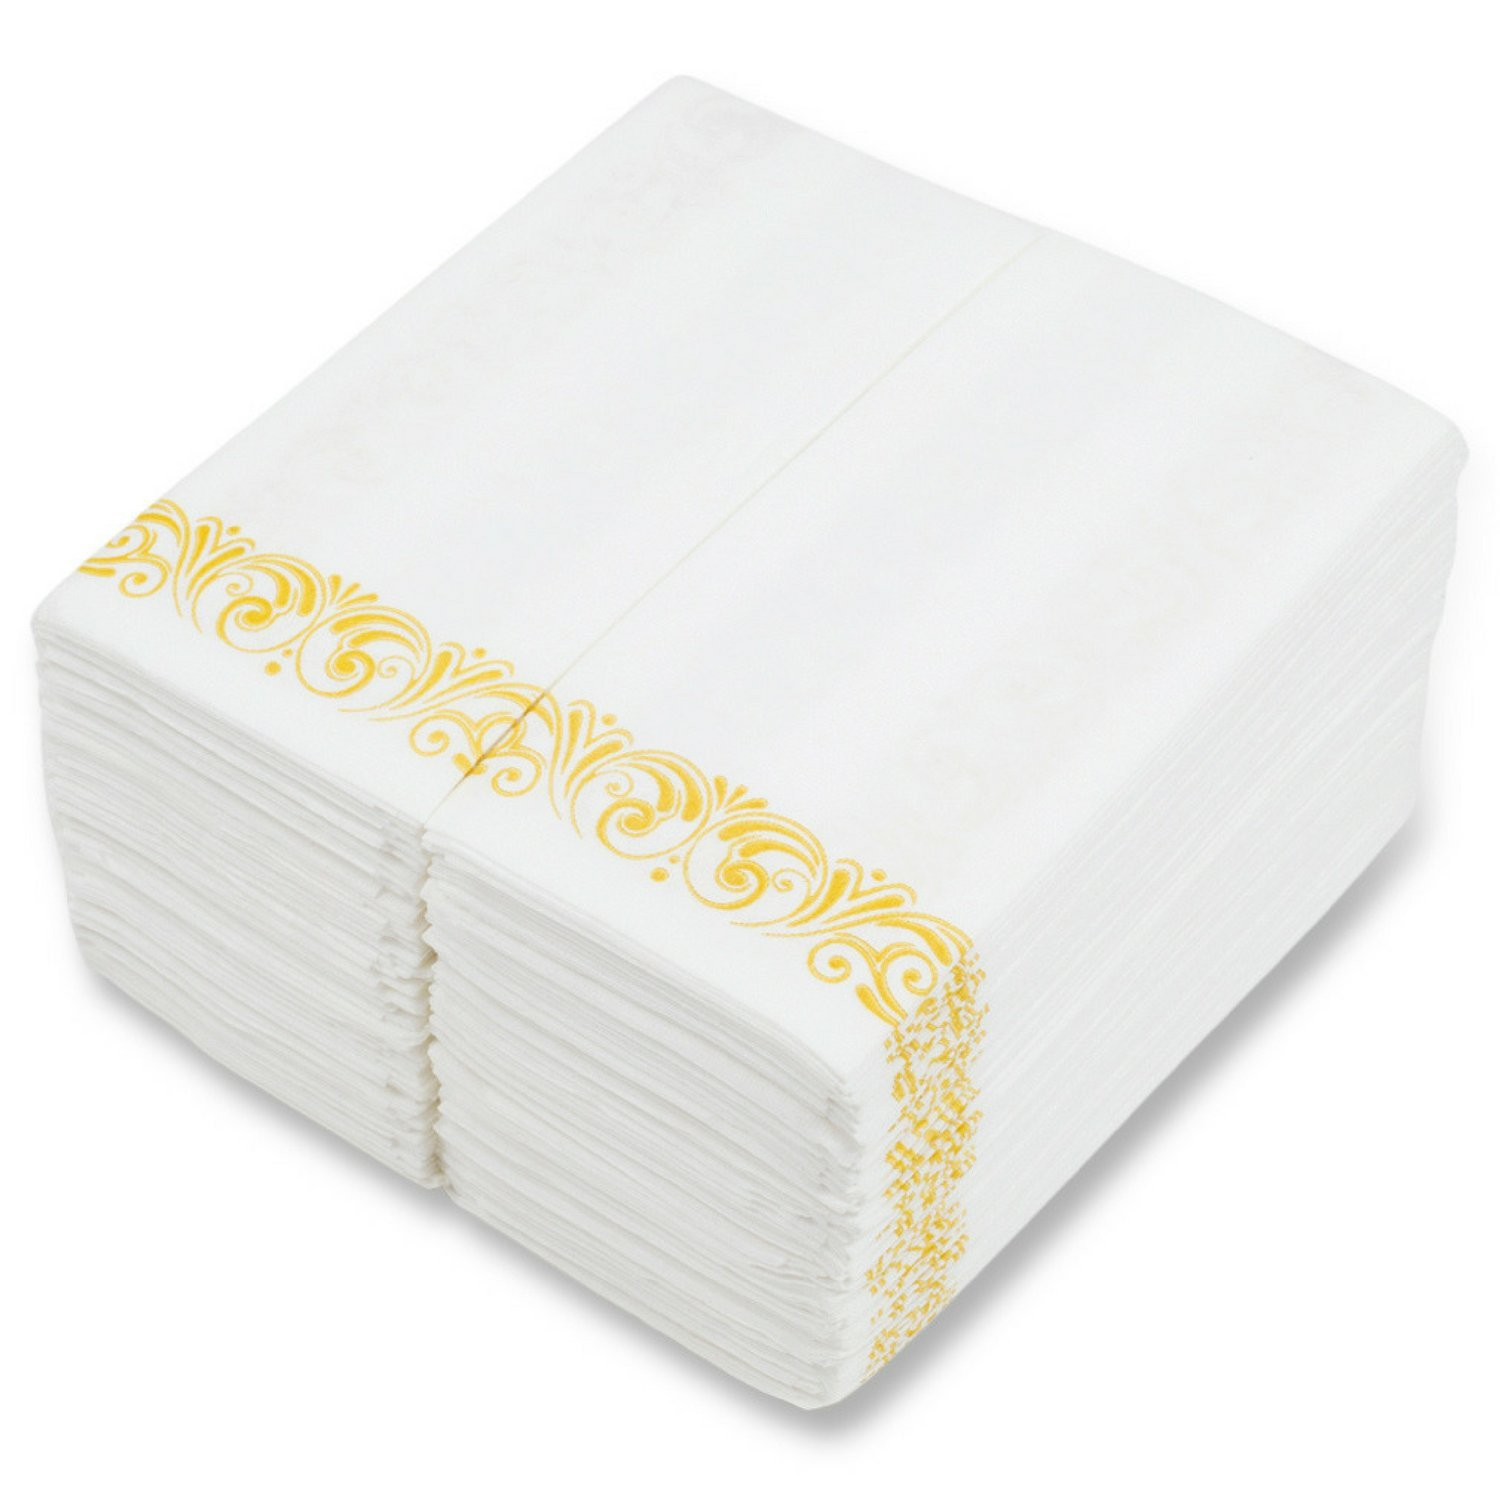 MOCKO Disposable Hand Napkins 17x12'' 100 Pack | Soft & Absorbent Towels With Gold Floral Decoration | Air-Laid Linen Paper | For Wedding, Bathroom Guests, Kitchen, Birthday Parties, Powder Room & More